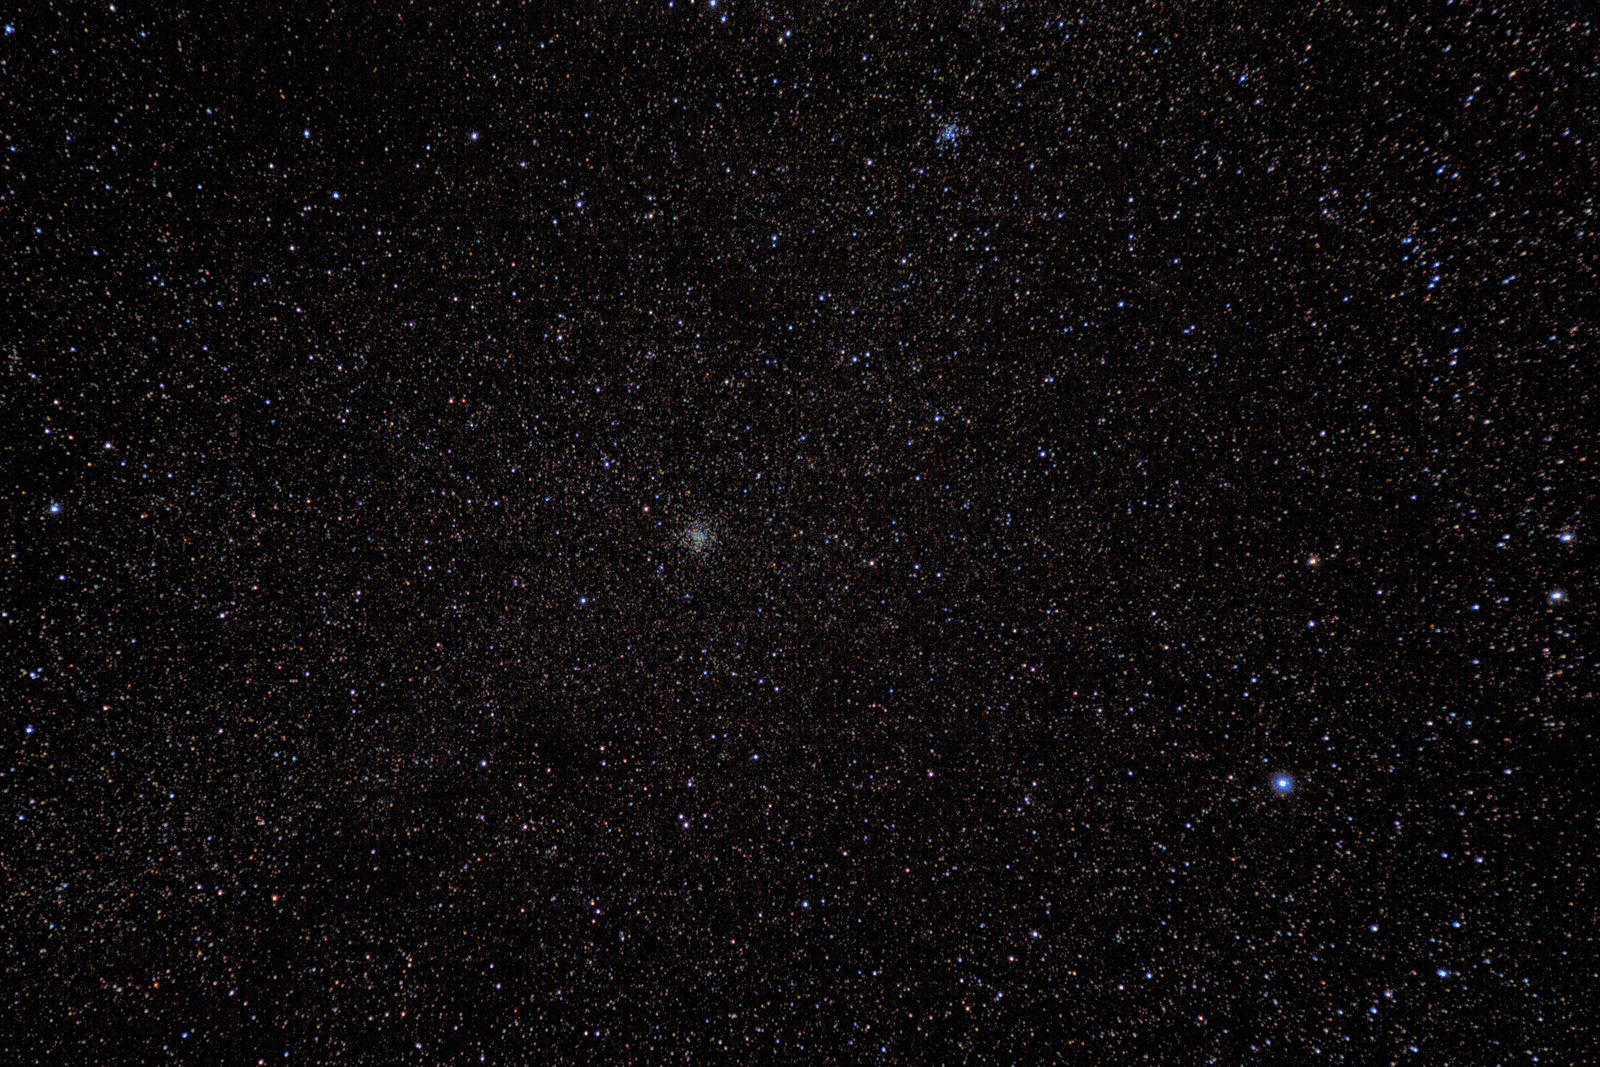 M37 and M36 widefield - 105mm F6.3. Nikon D3200 with Nikon 55-200mm lens. EQ3-2 unguided.